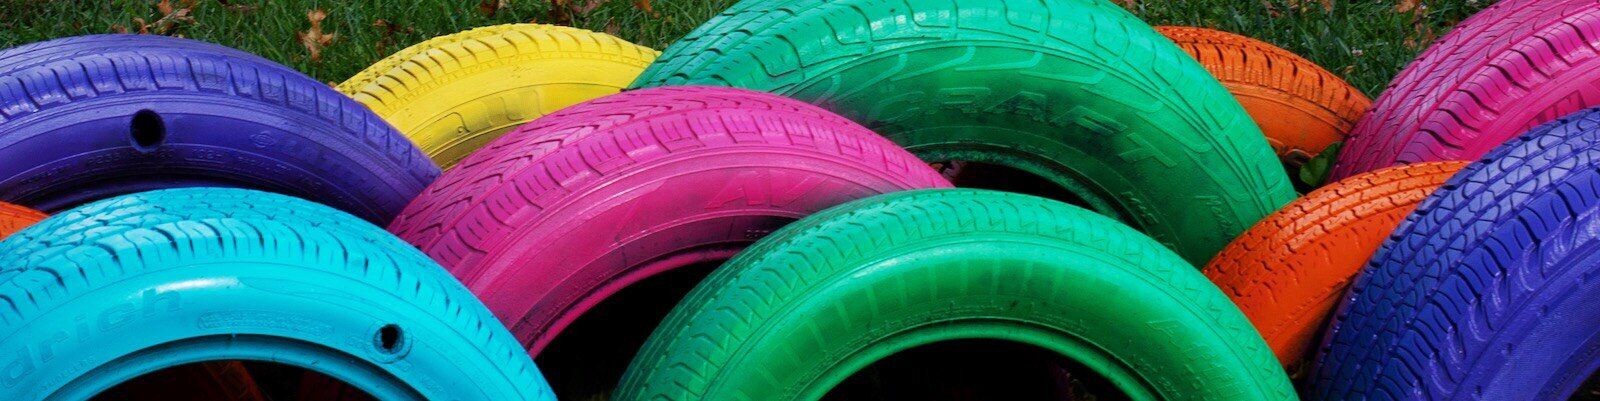 Colorful, recycled tires create a playground in the Mount Vernon Park neighborhood.